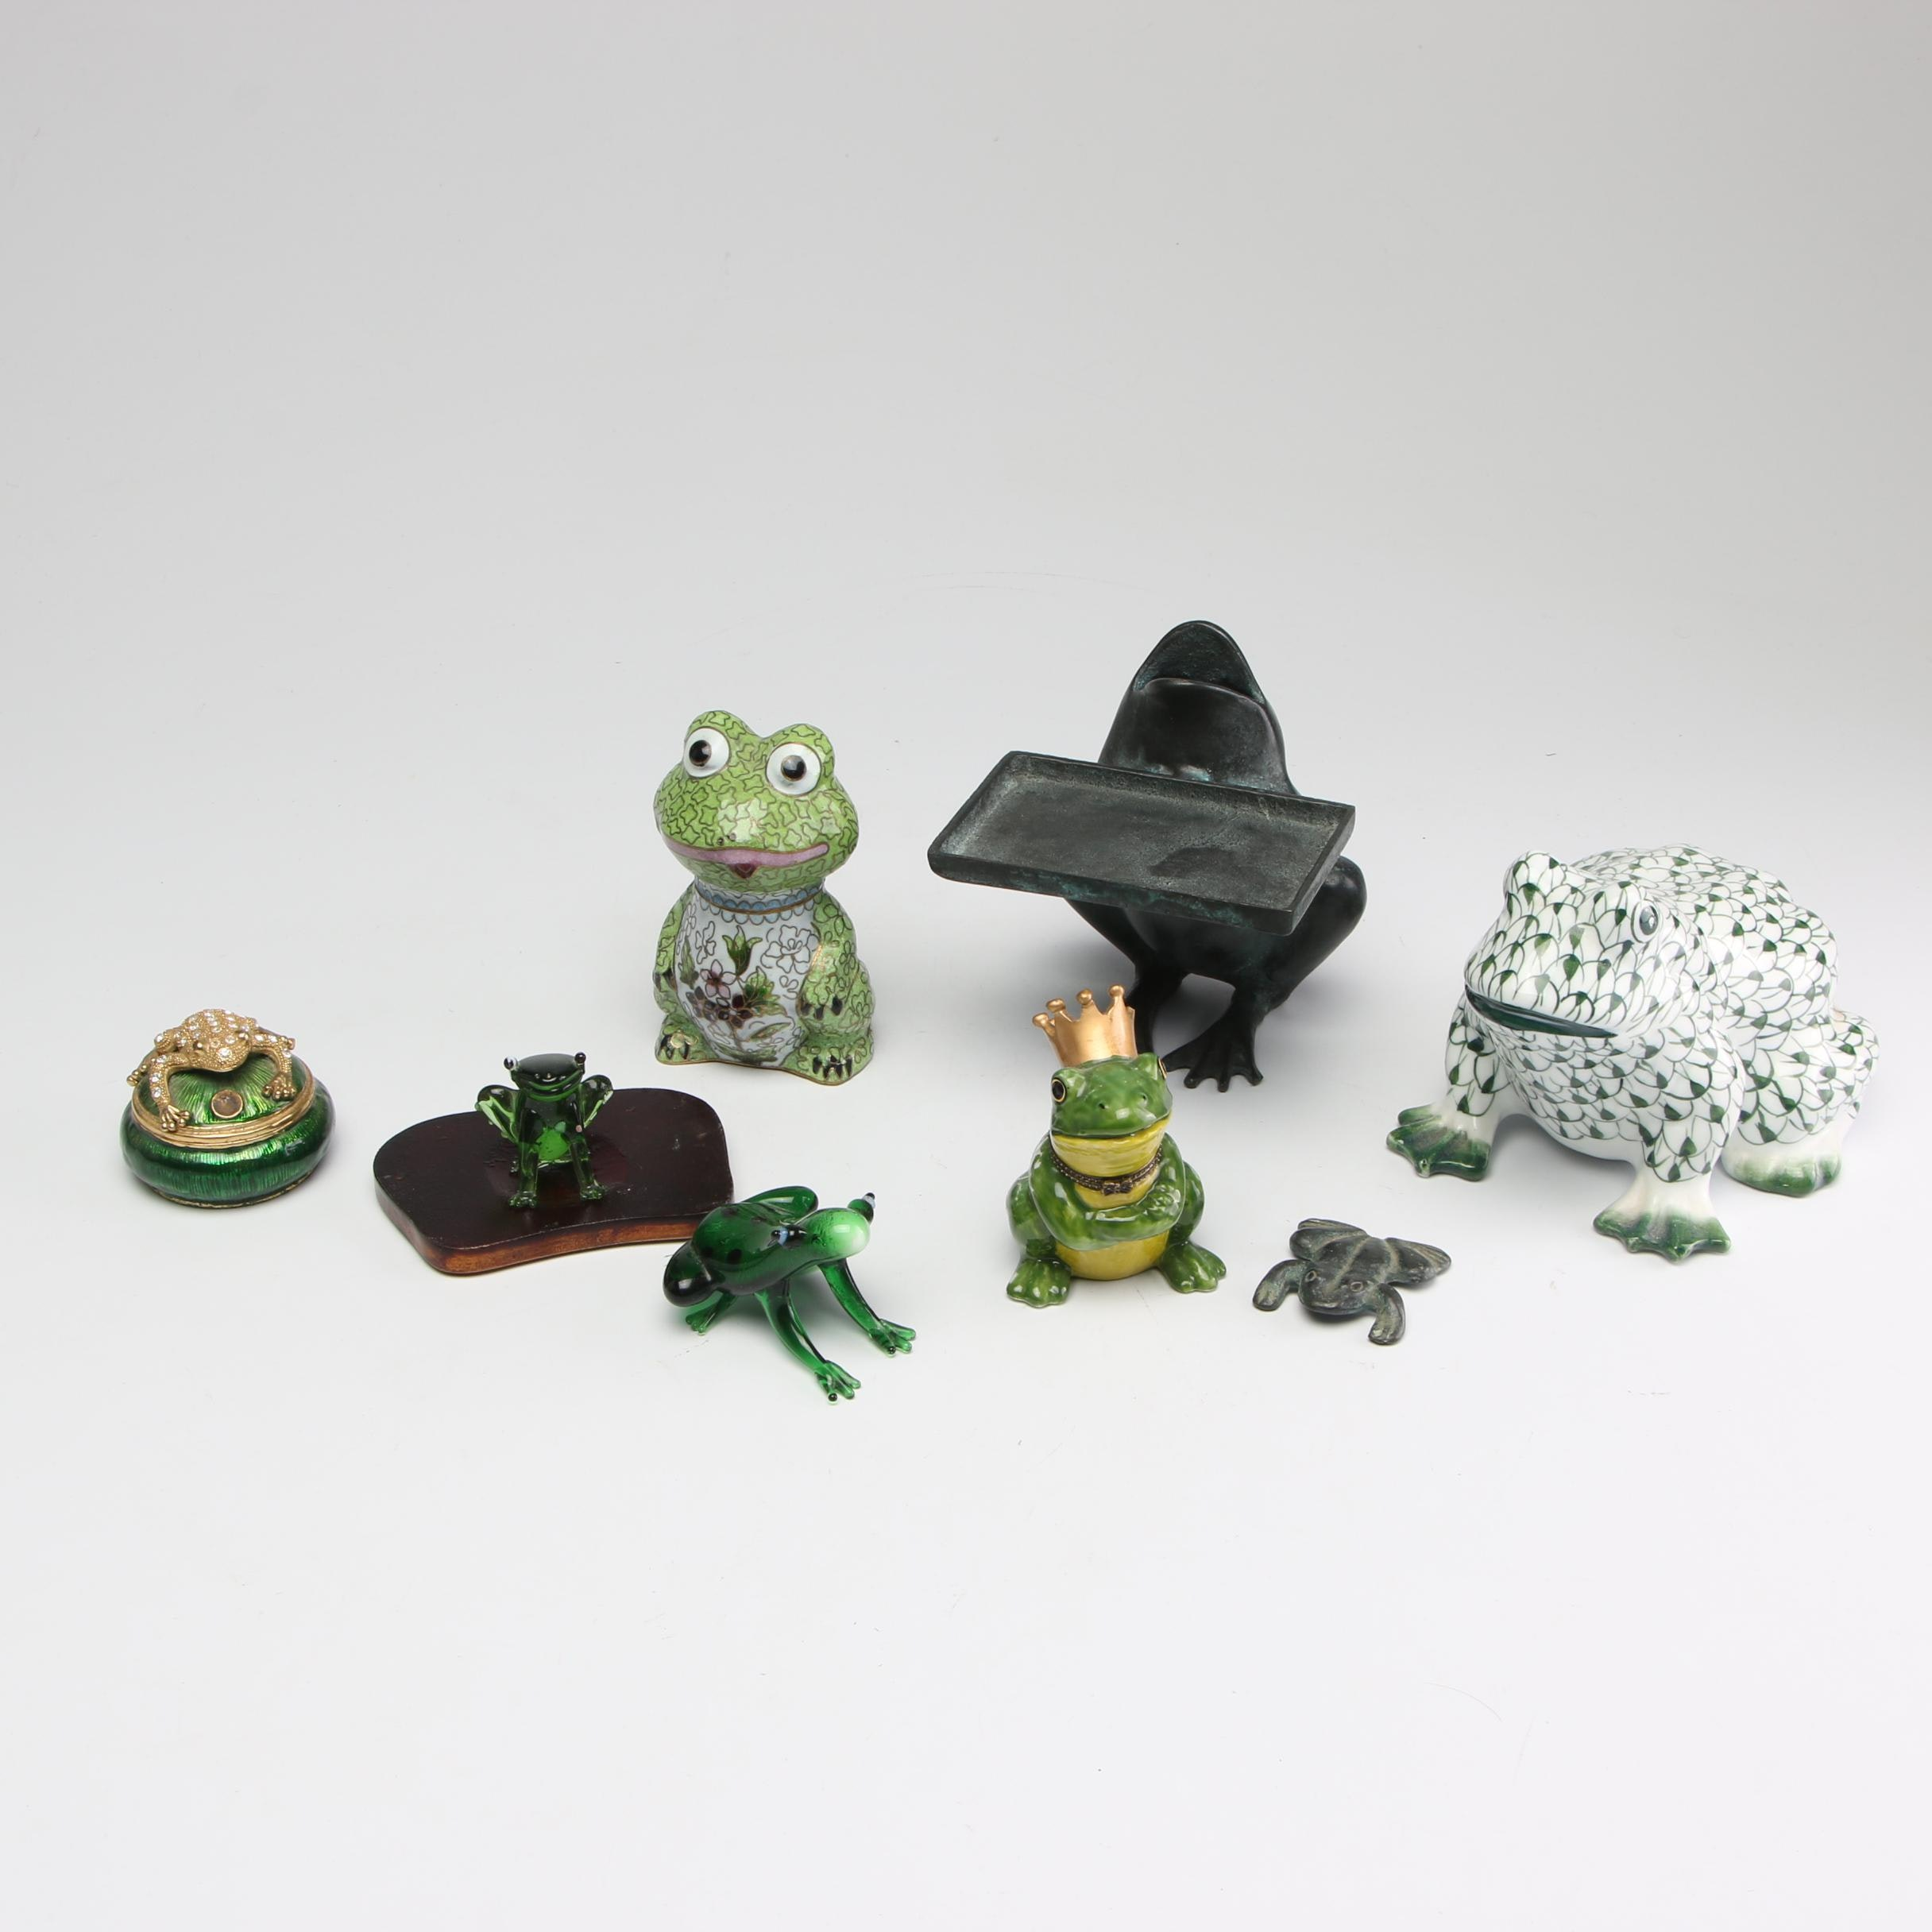 Andrea by Sadek and Other Decorative Frog Figurines, Late 20th Century